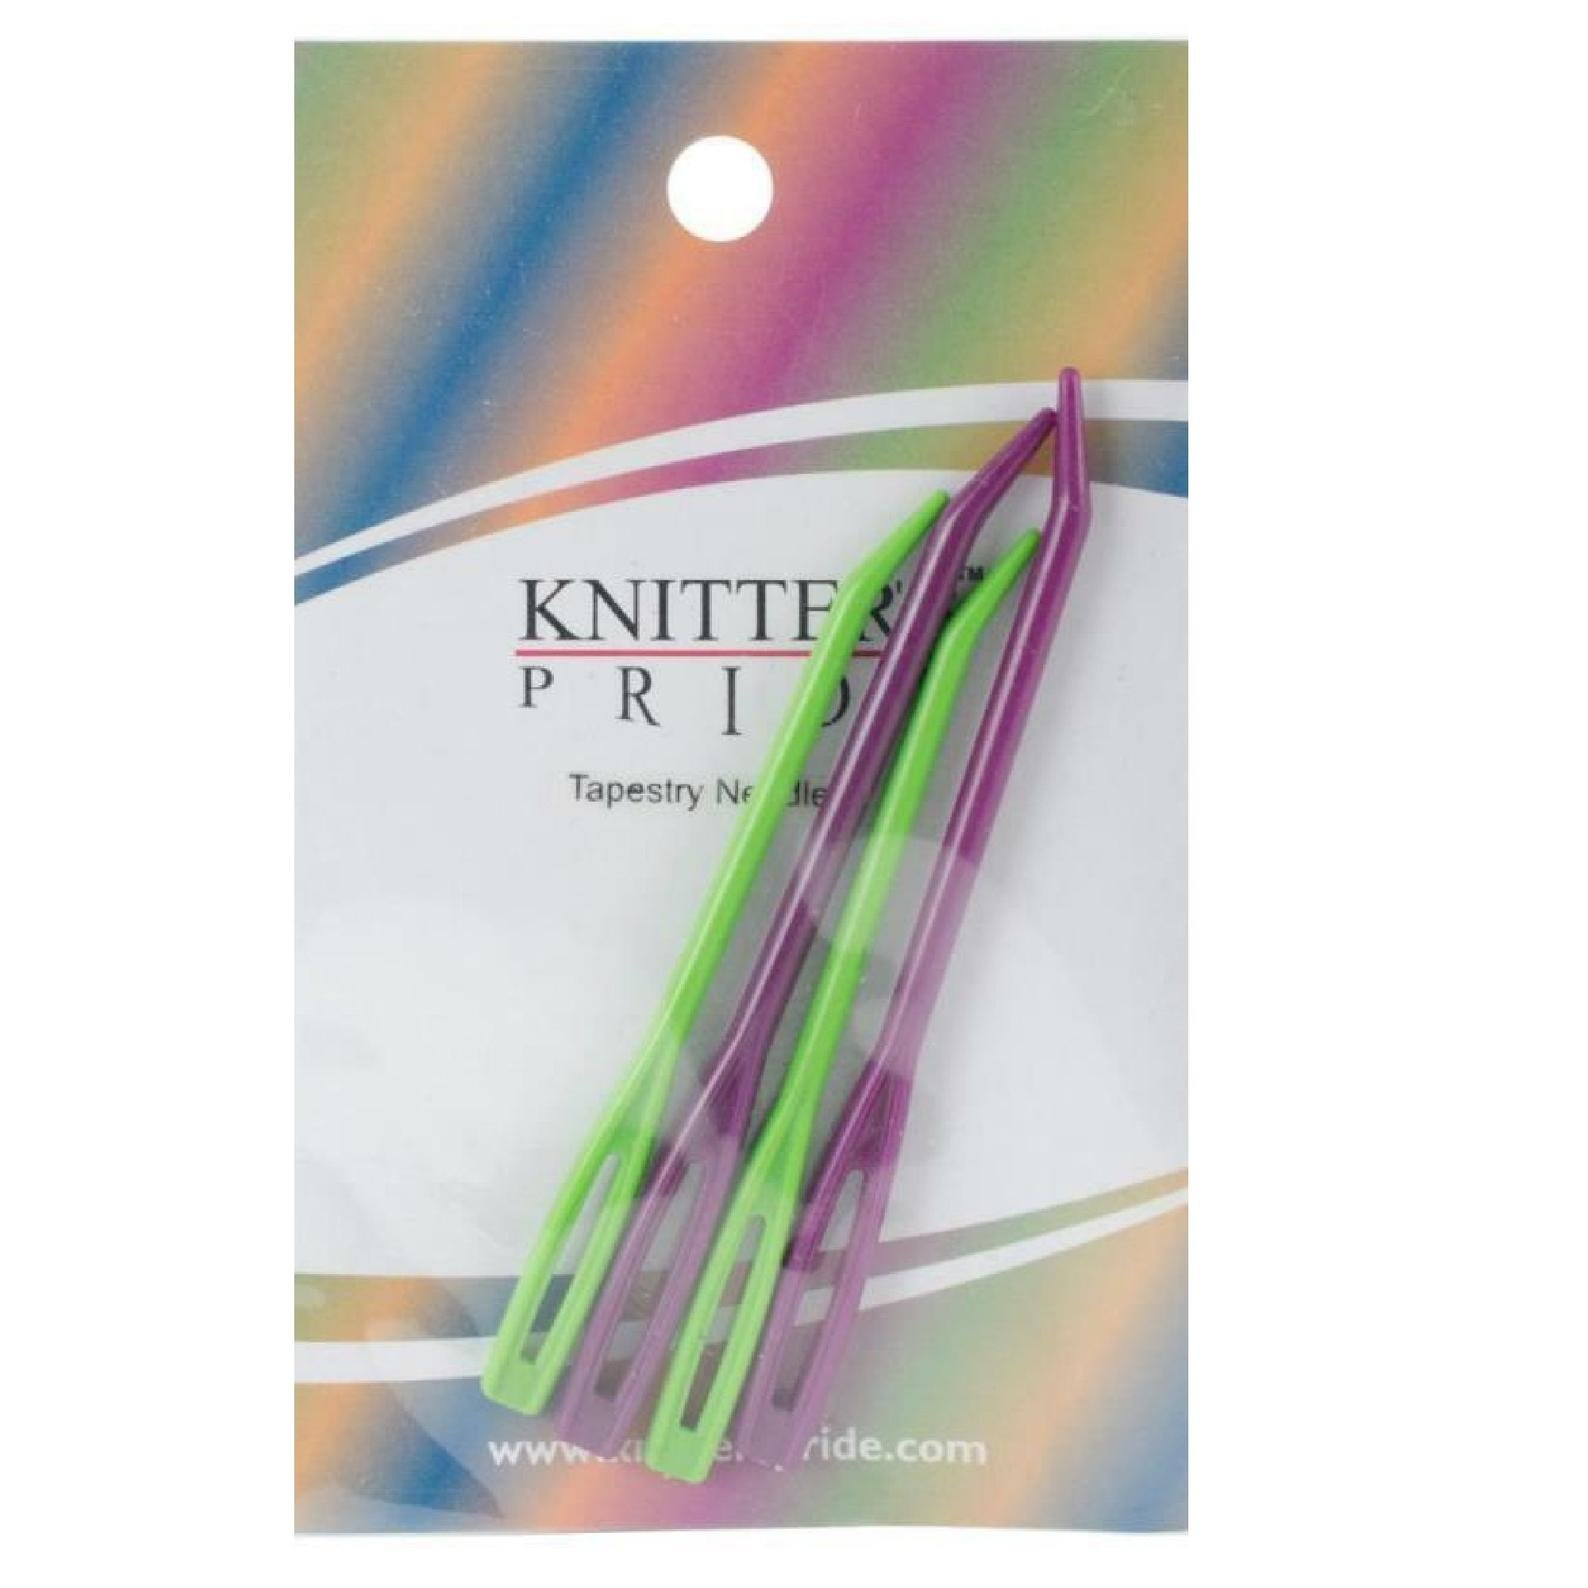 Knitter's Pride Tapestry Needle Set - Pack of 2 small and 2 large needles